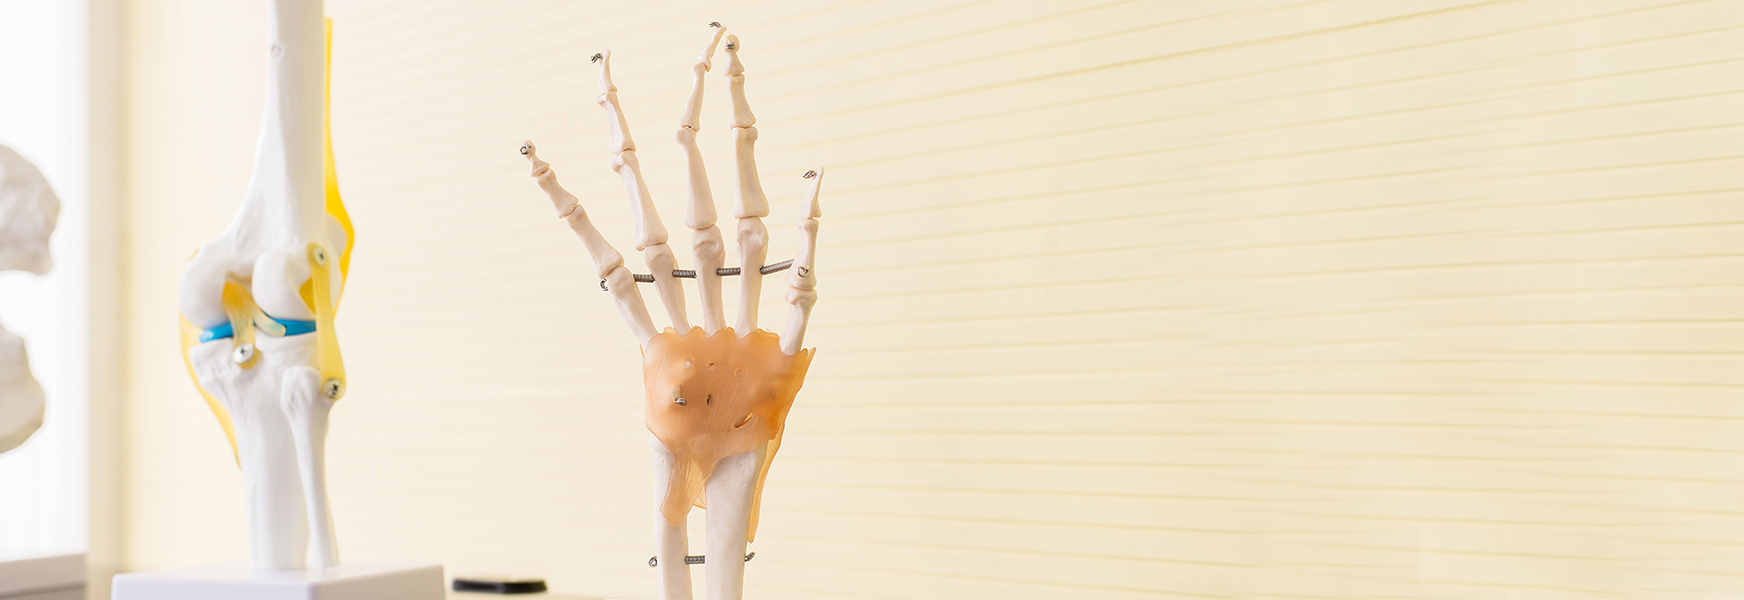 Plastic skeleton showing hand anatomy